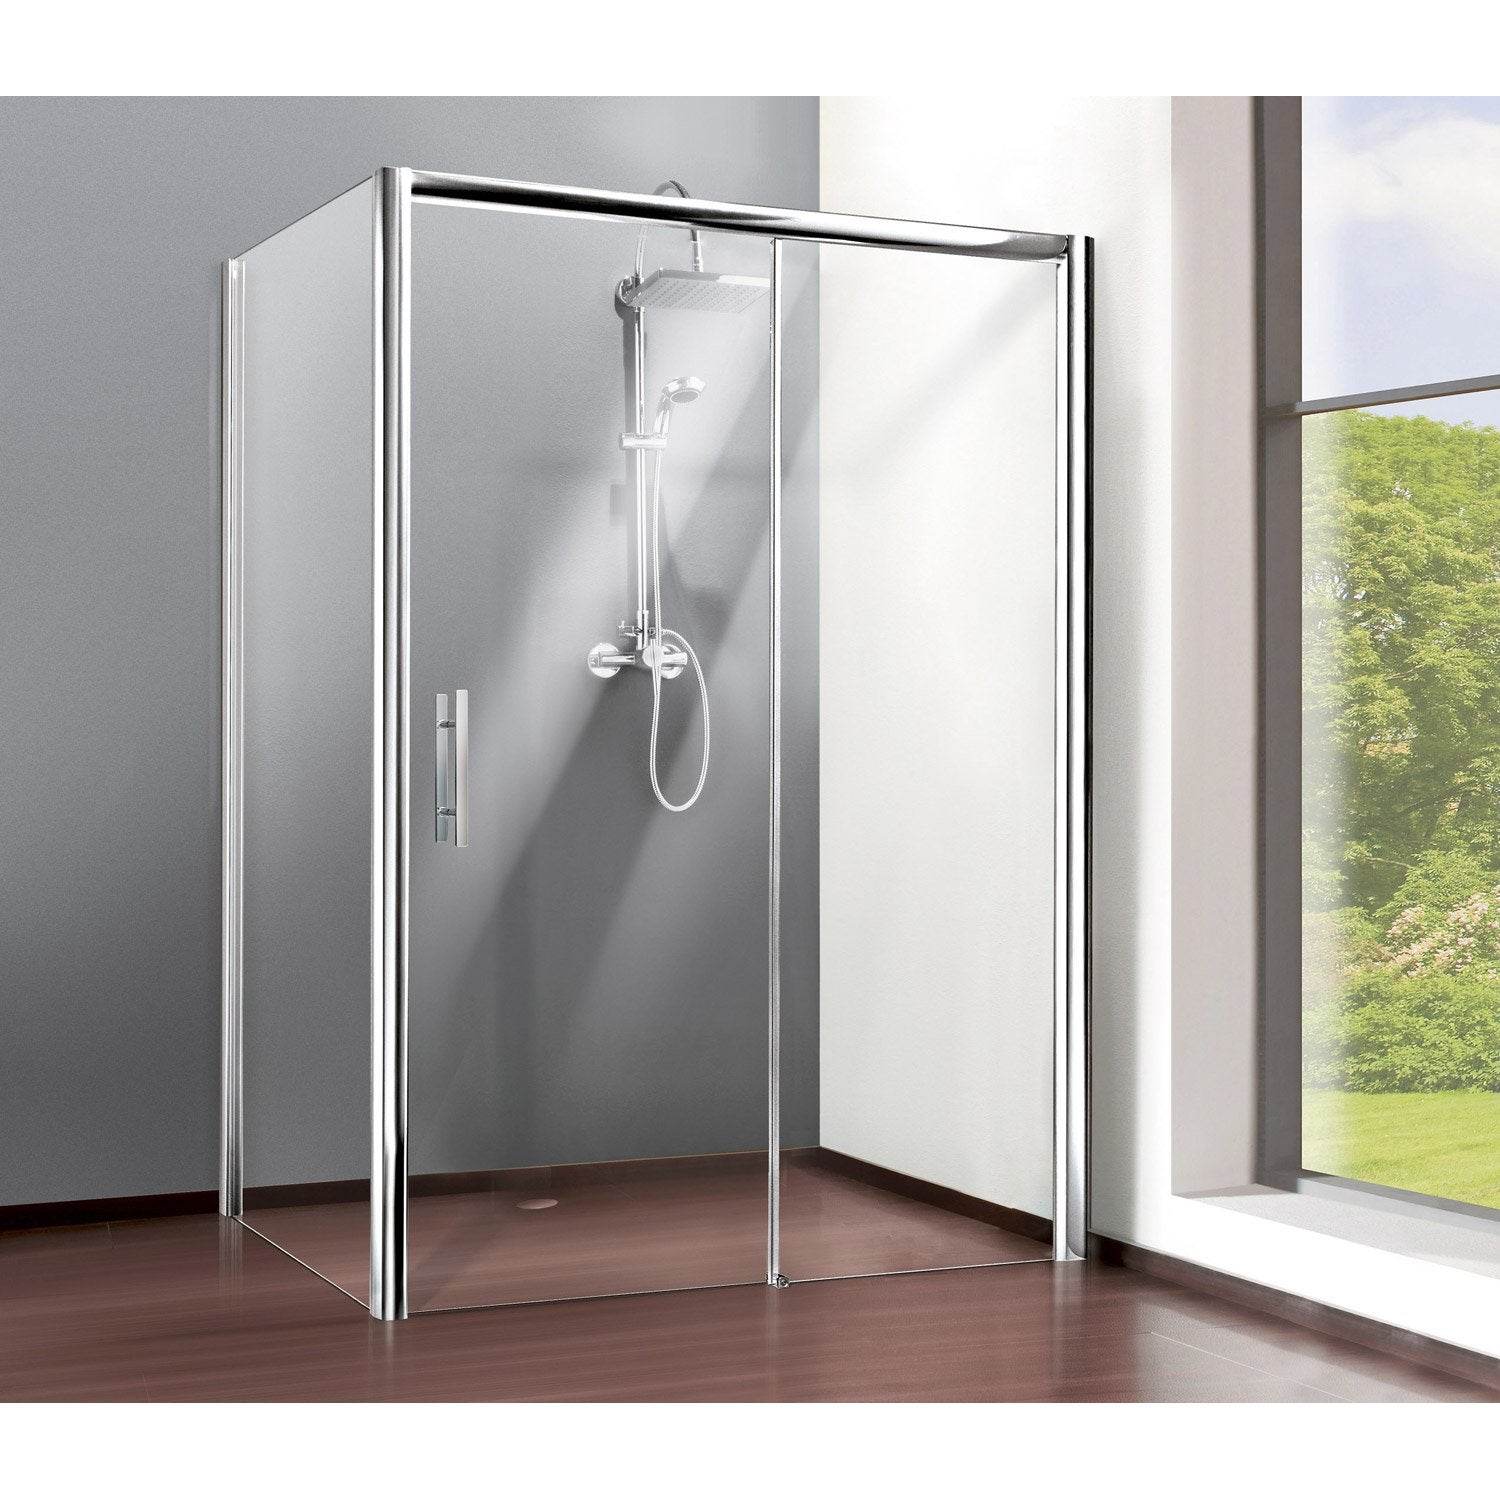 porte de douche coulissante 100 cm transparent adena leroy merlin. Black Bedroom Furniture Sets. Home Design Ideas